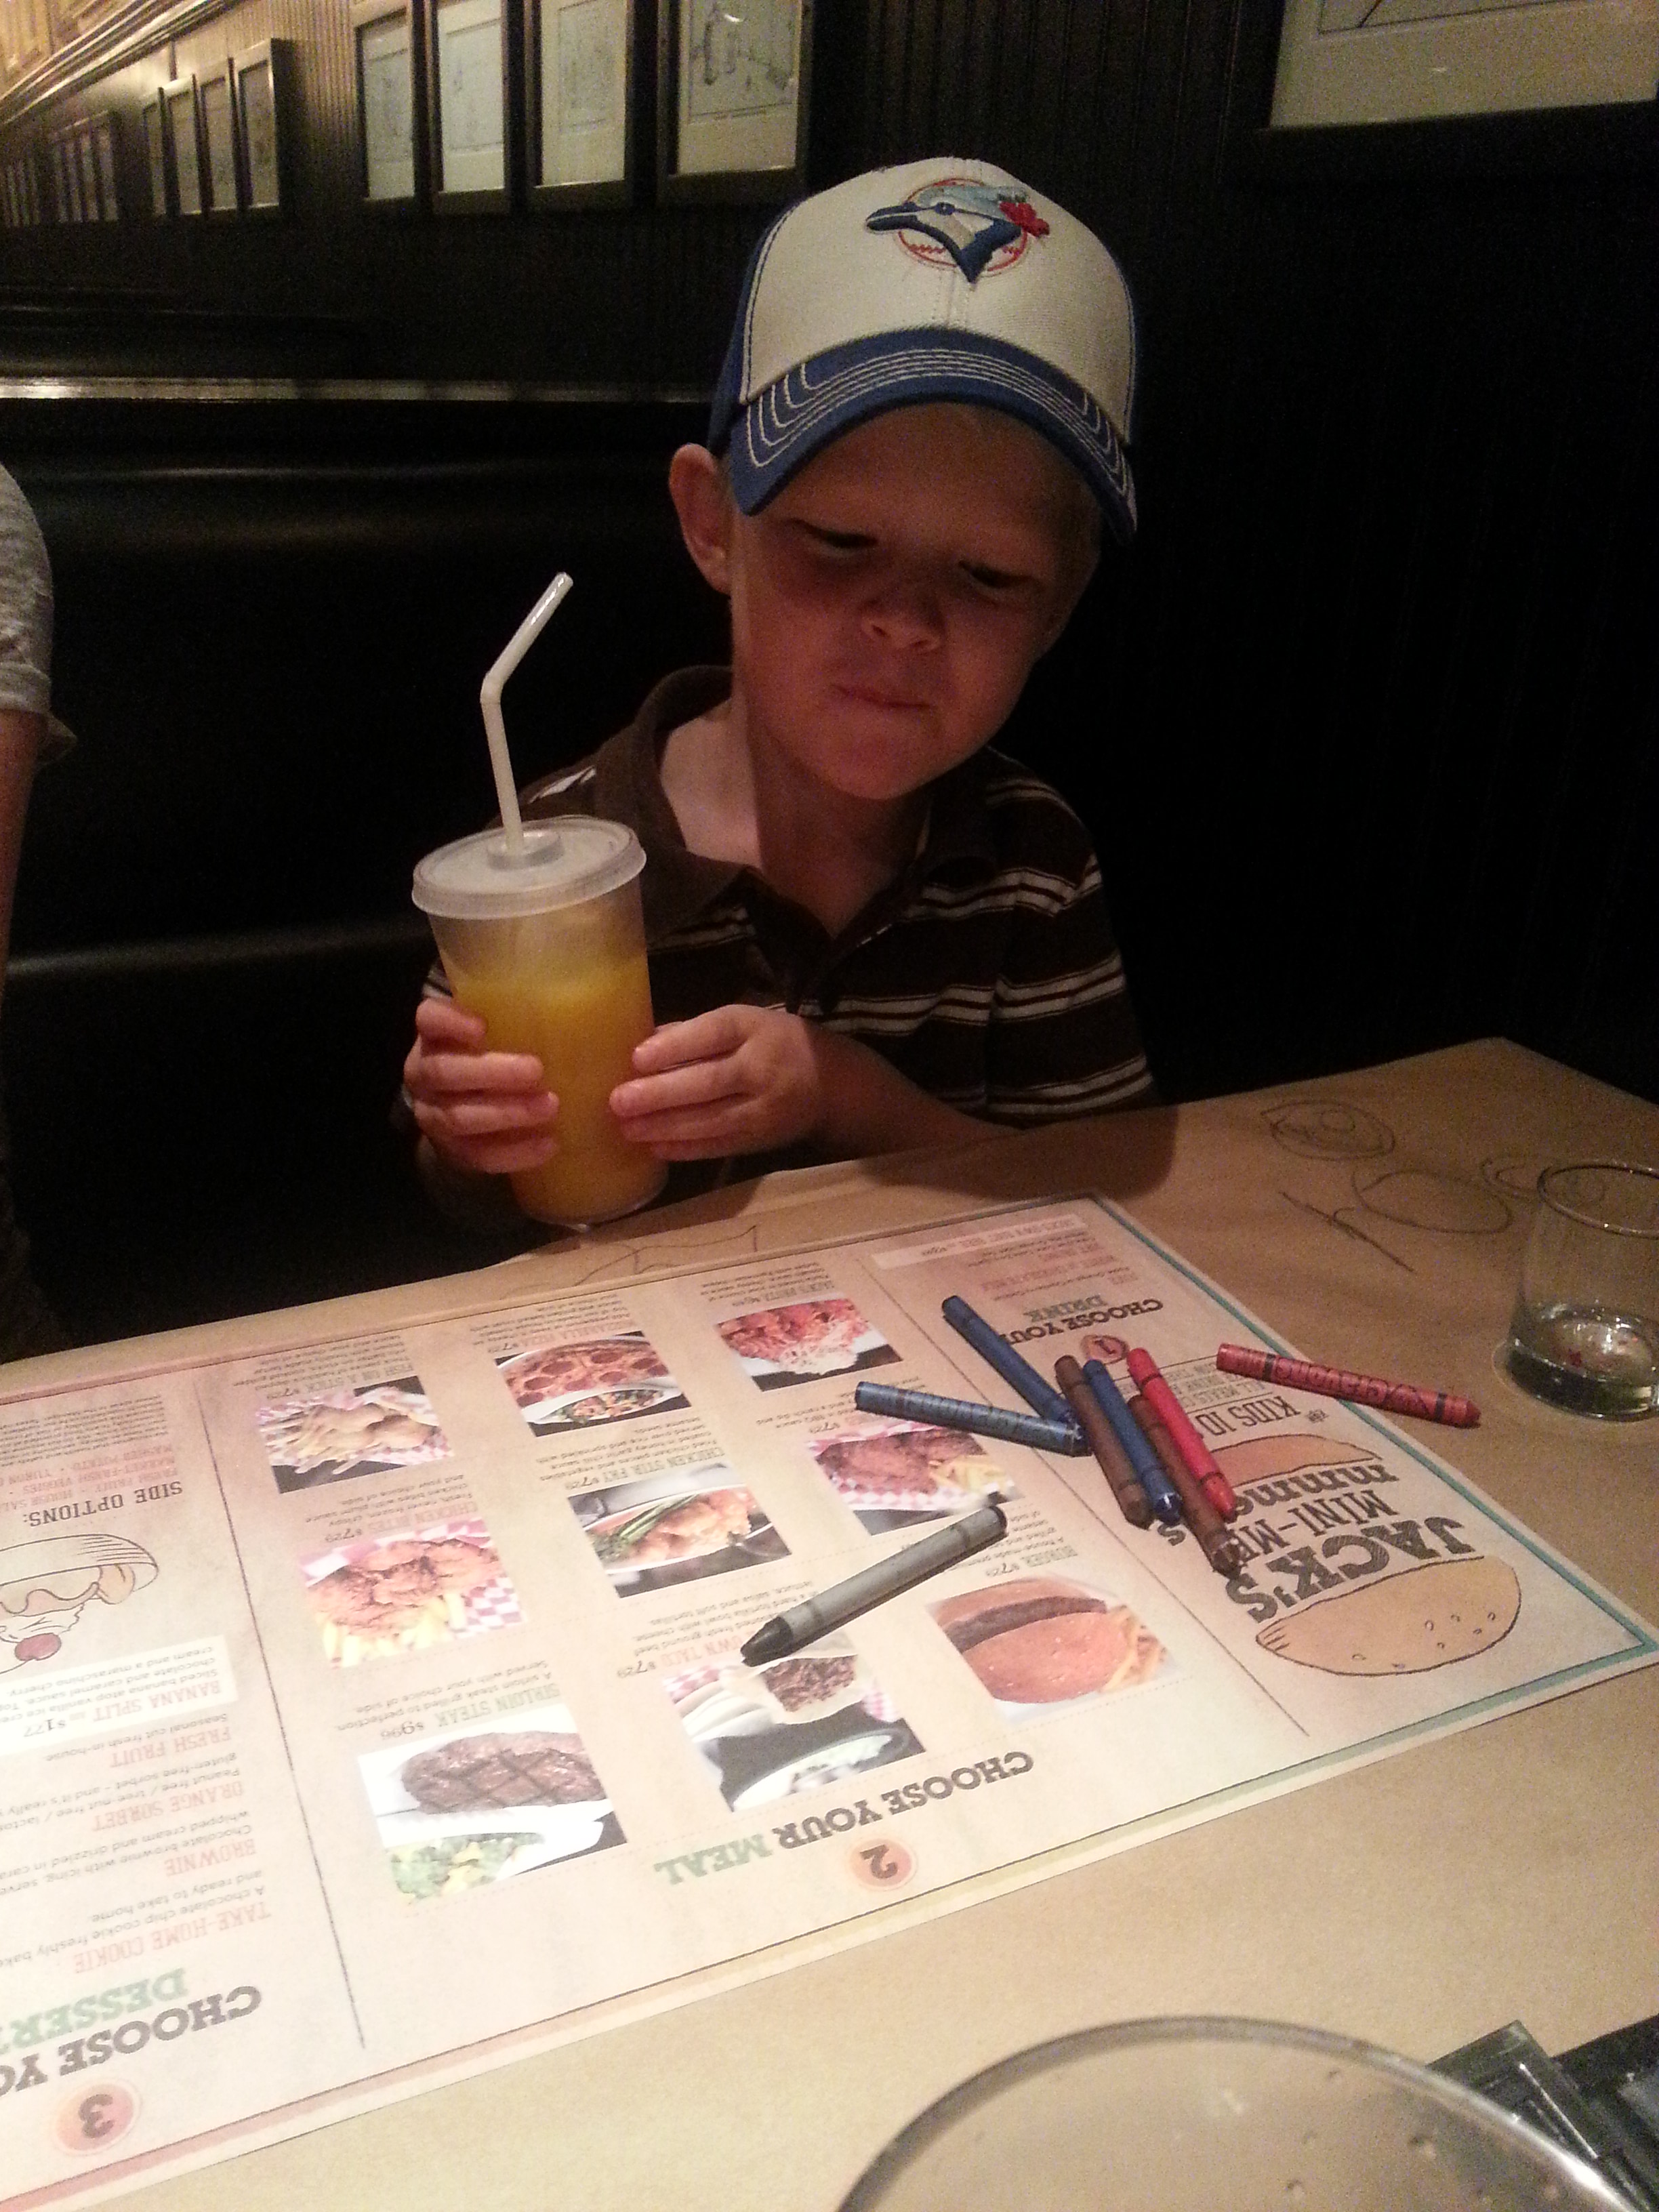 2014 07 26 11.43.00 You Know Who Understands Kids   #JackAstors